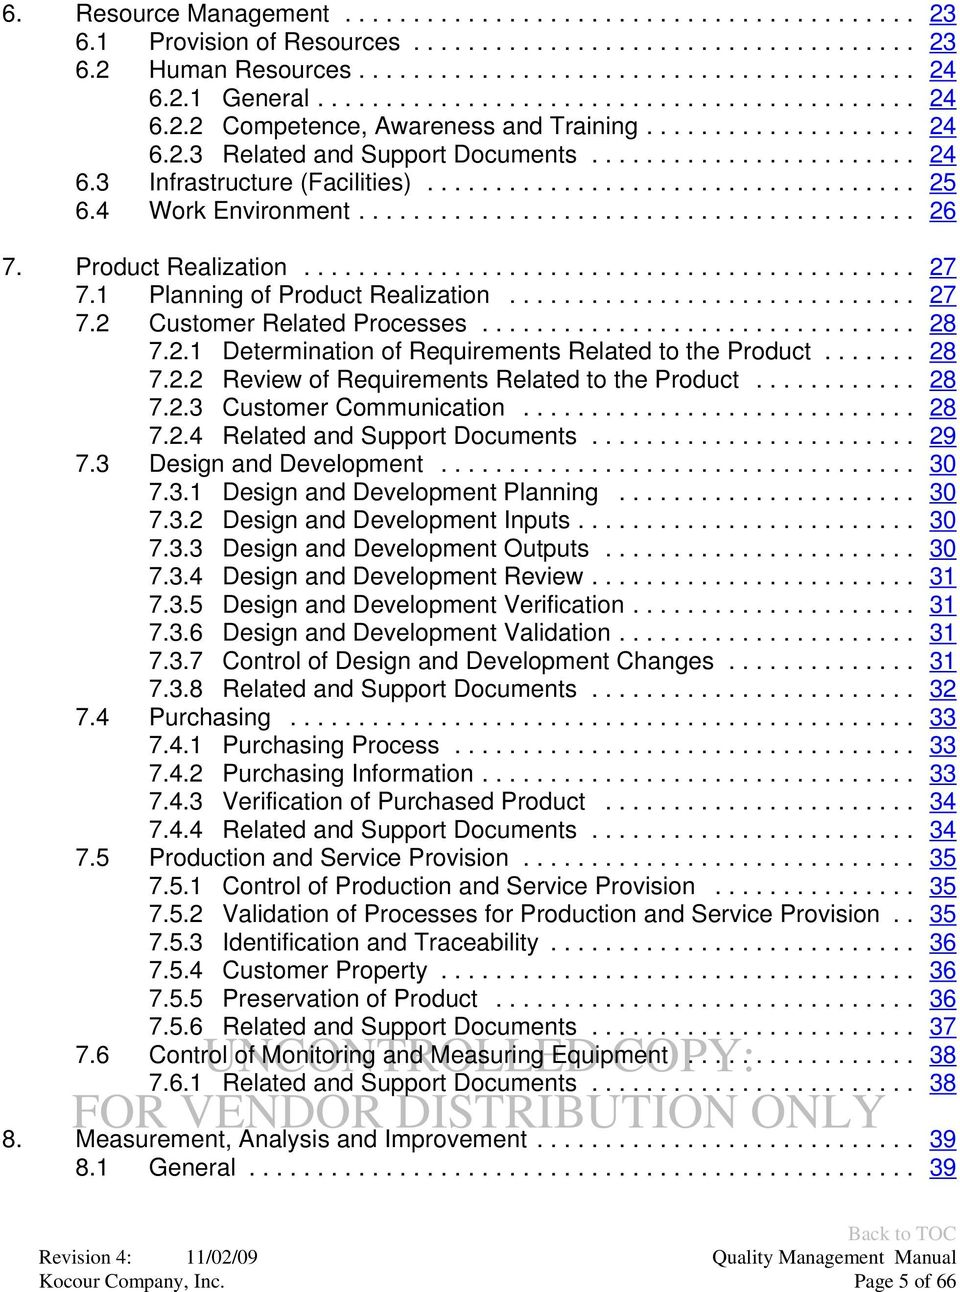 .. 28 7.2.2 Review of Requirements Related to the Product... 28 7.2.3 Customer Communication... 28 7.2.4 Related and Support Documents... 29 7.3 Design and Development... 30 7.3.1 Design and Development Planning.